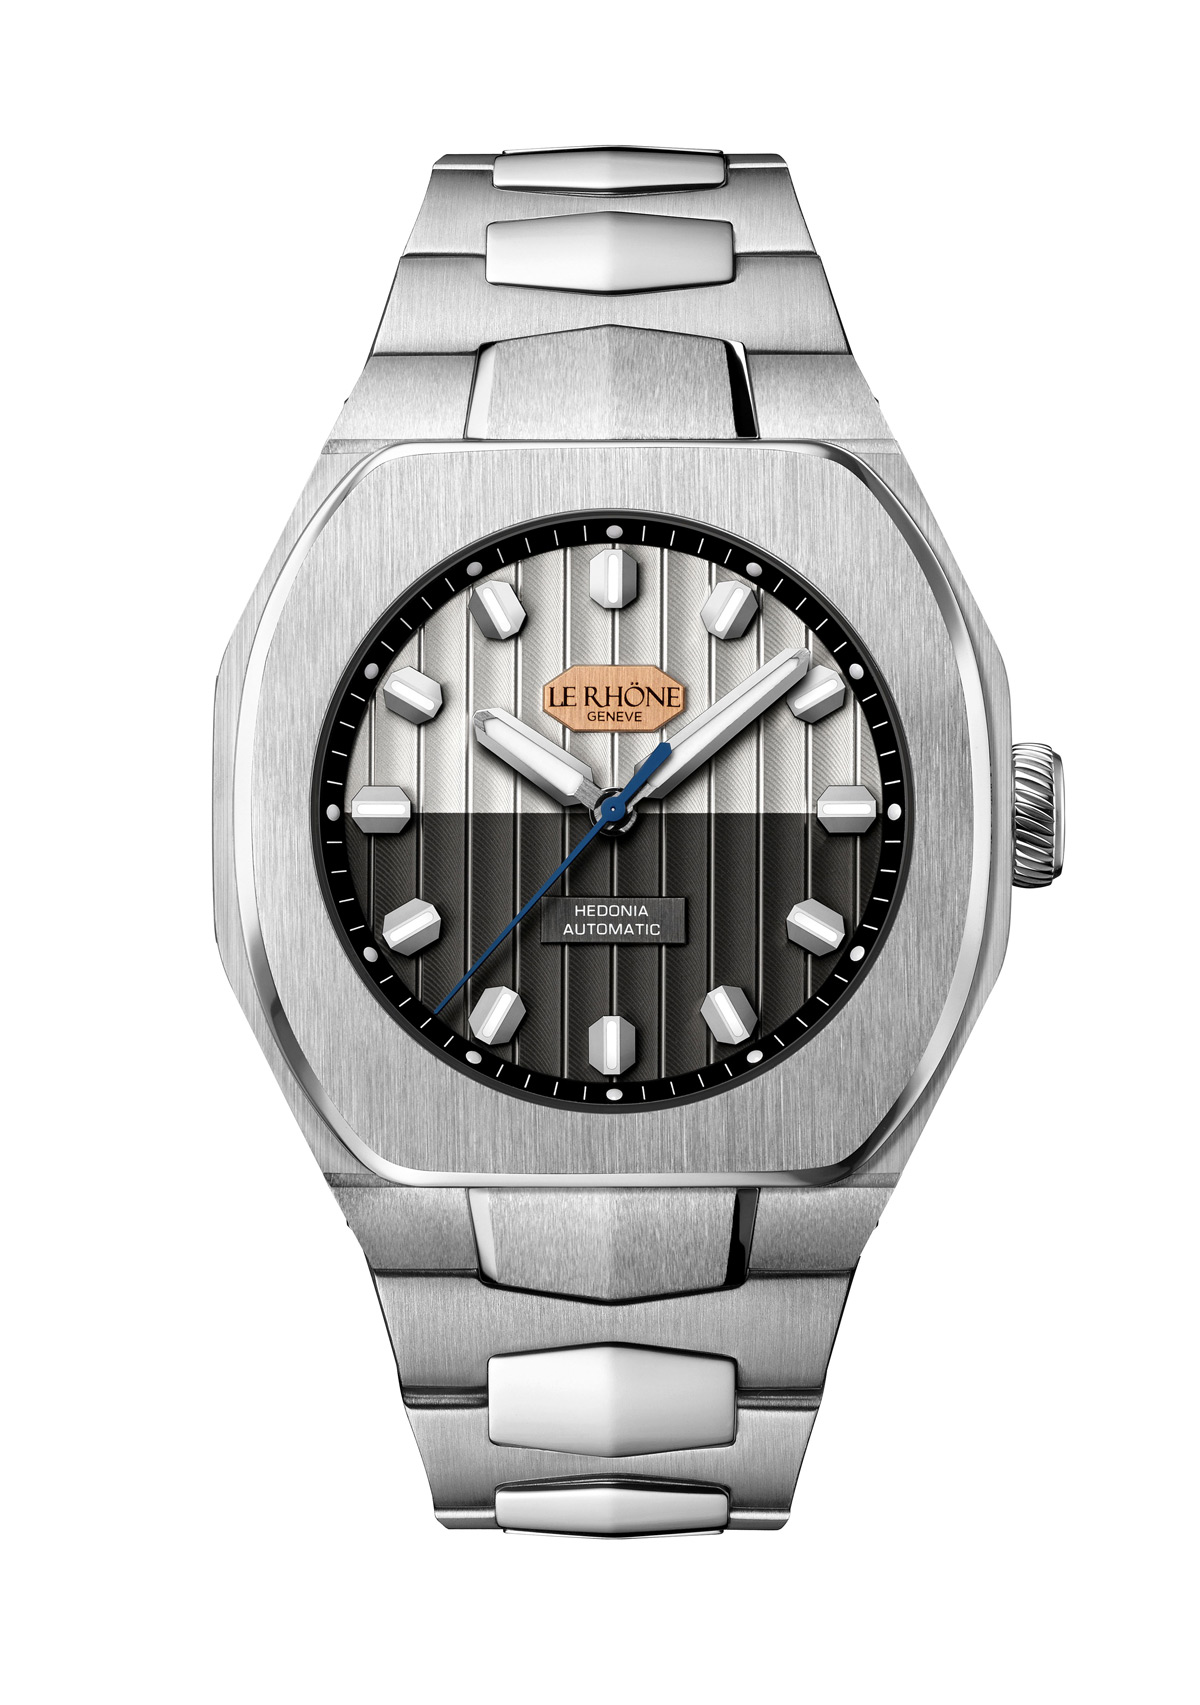 hedonia-le-rhone-watch-H1SS012-1-C91D-2